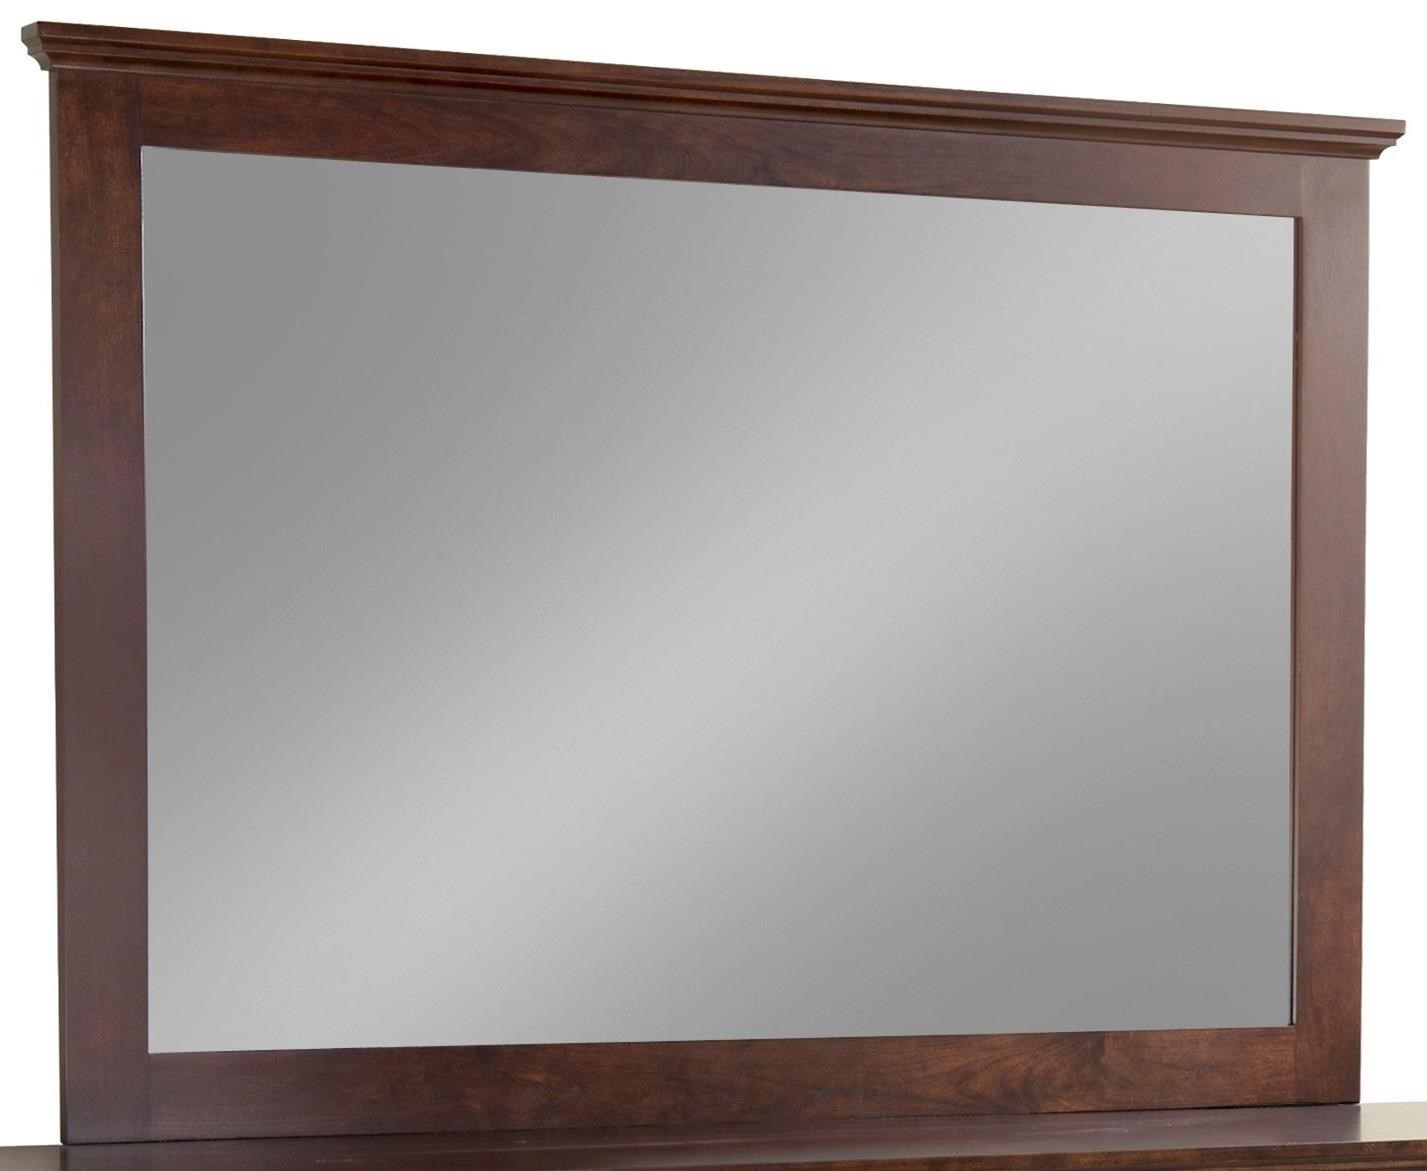 Elegance Tall Wide Mirror by Daniel's Amish at H.L. Stephens